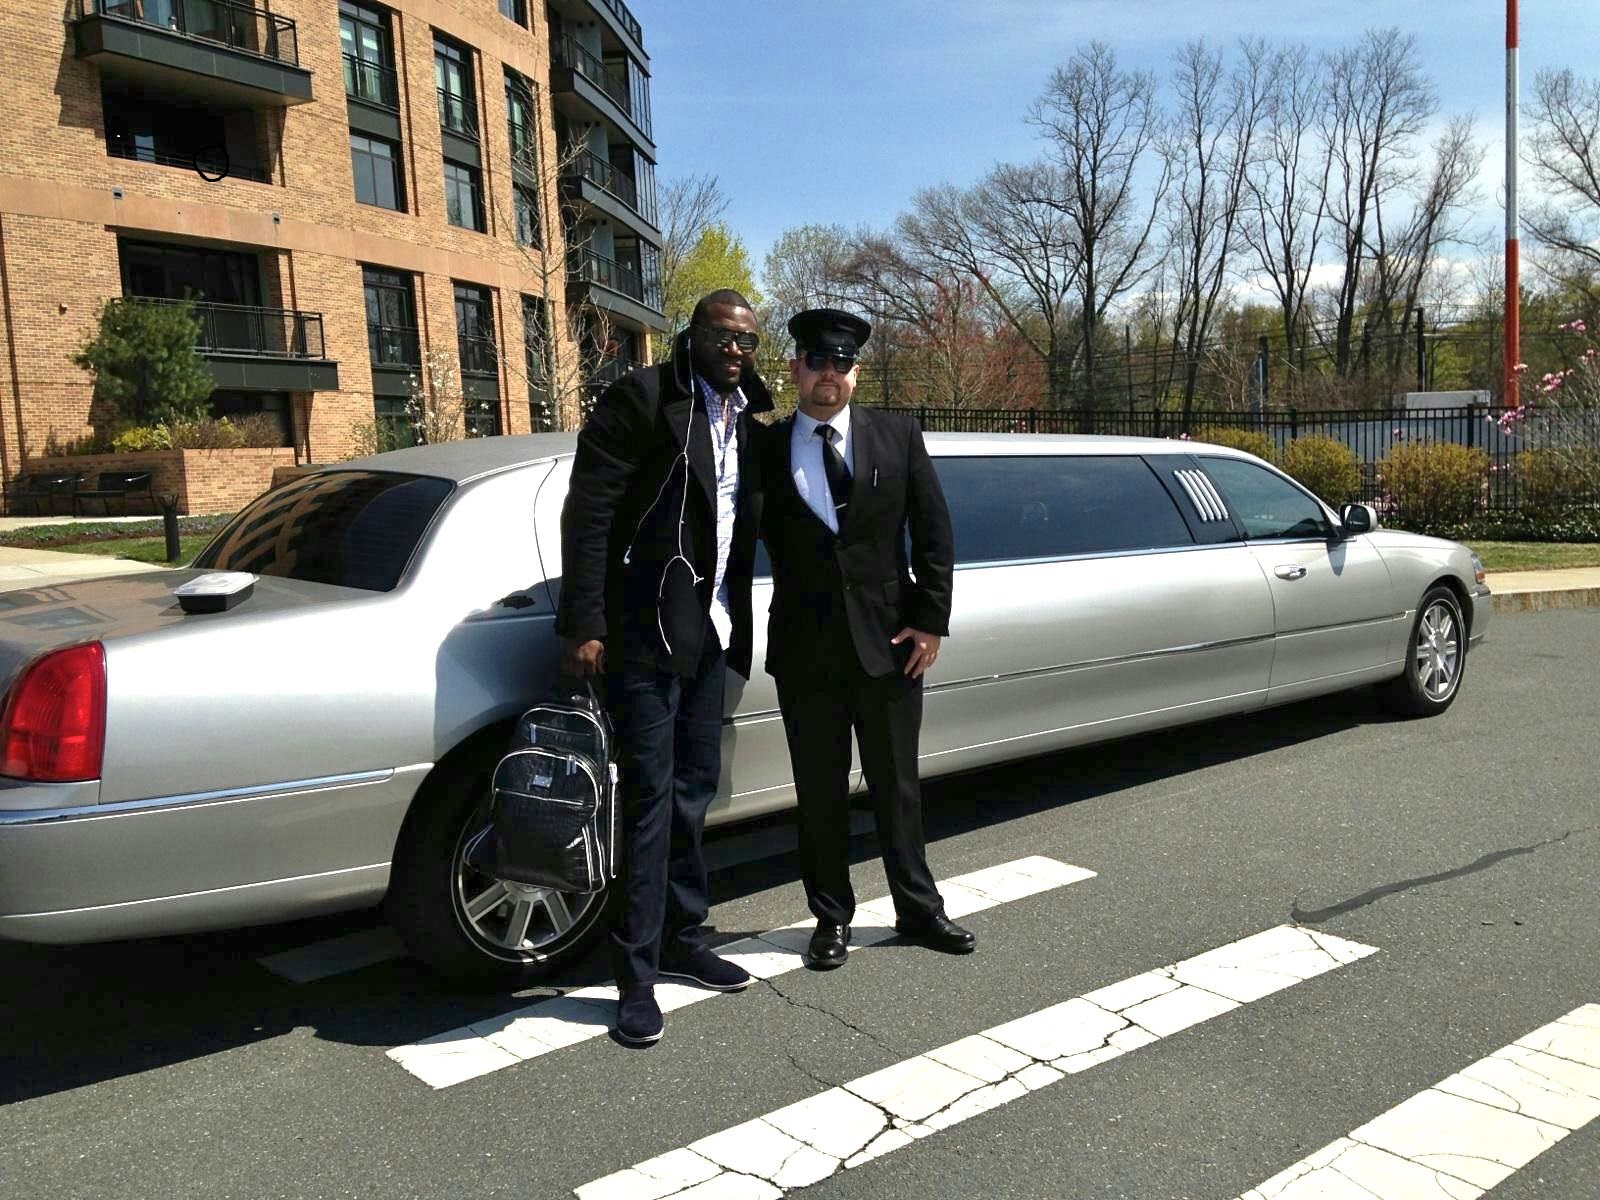 Limos for Rent Rindge NH 03461